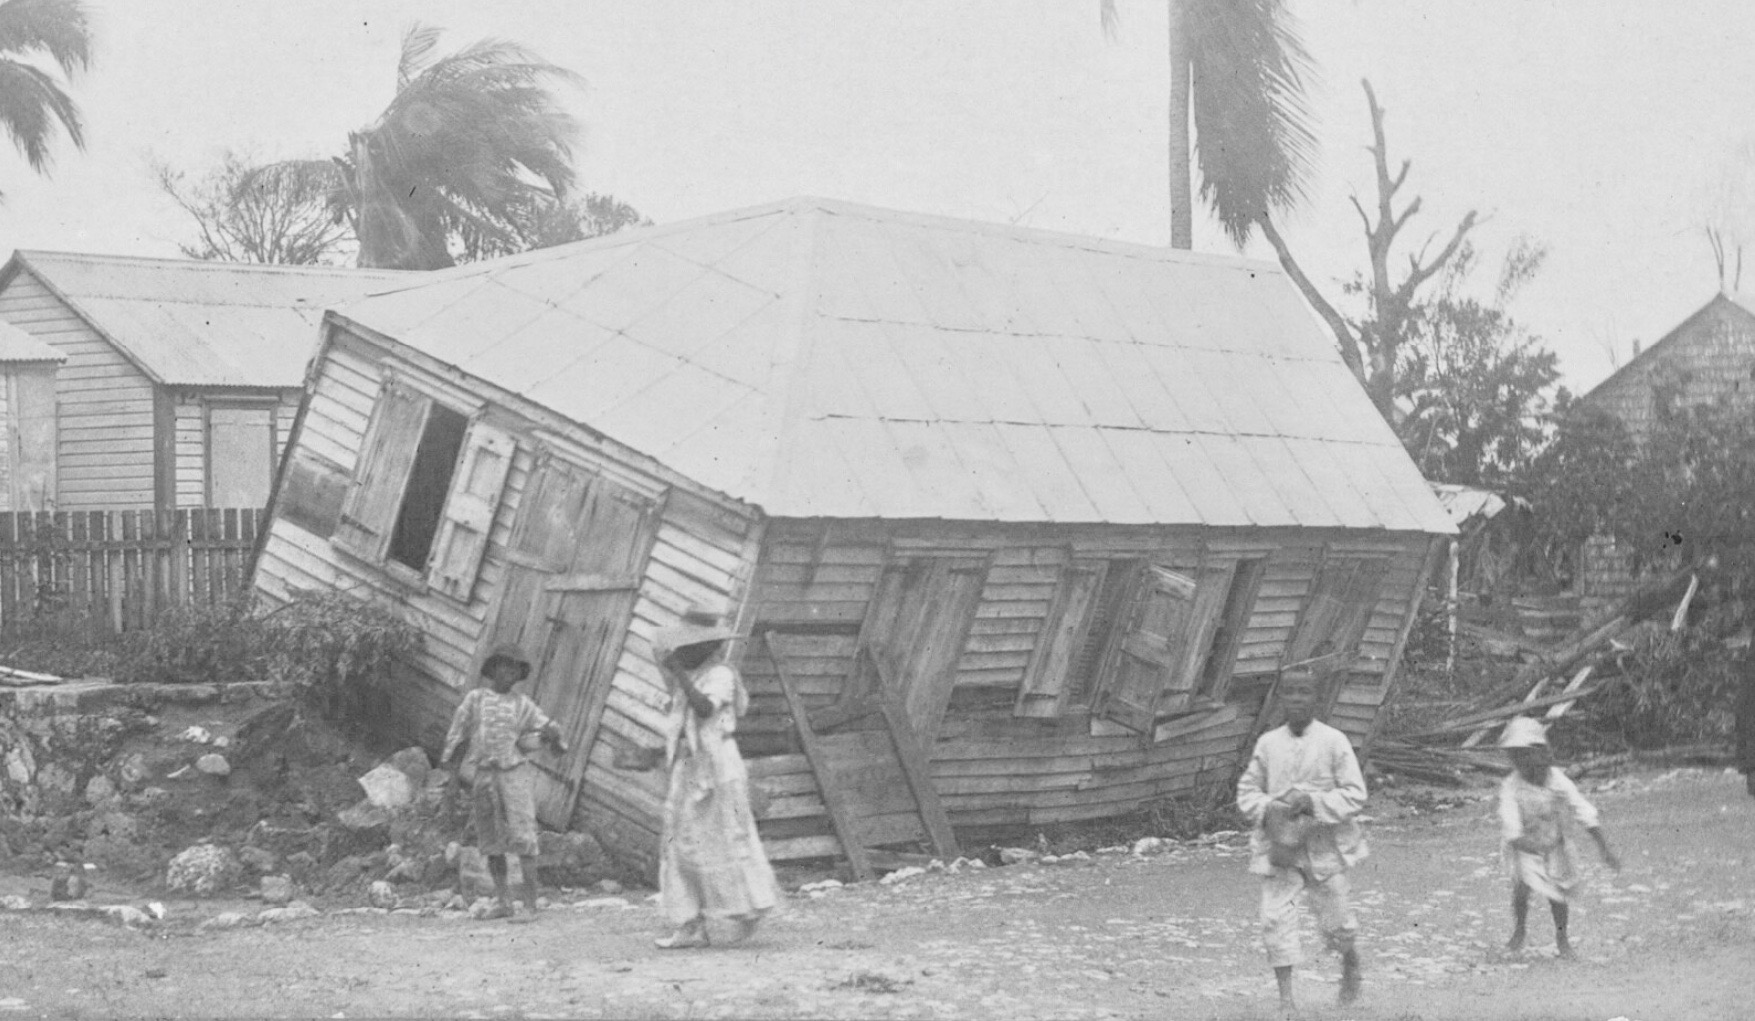 hurricane 1916, St. Thomas, Danish West Indies